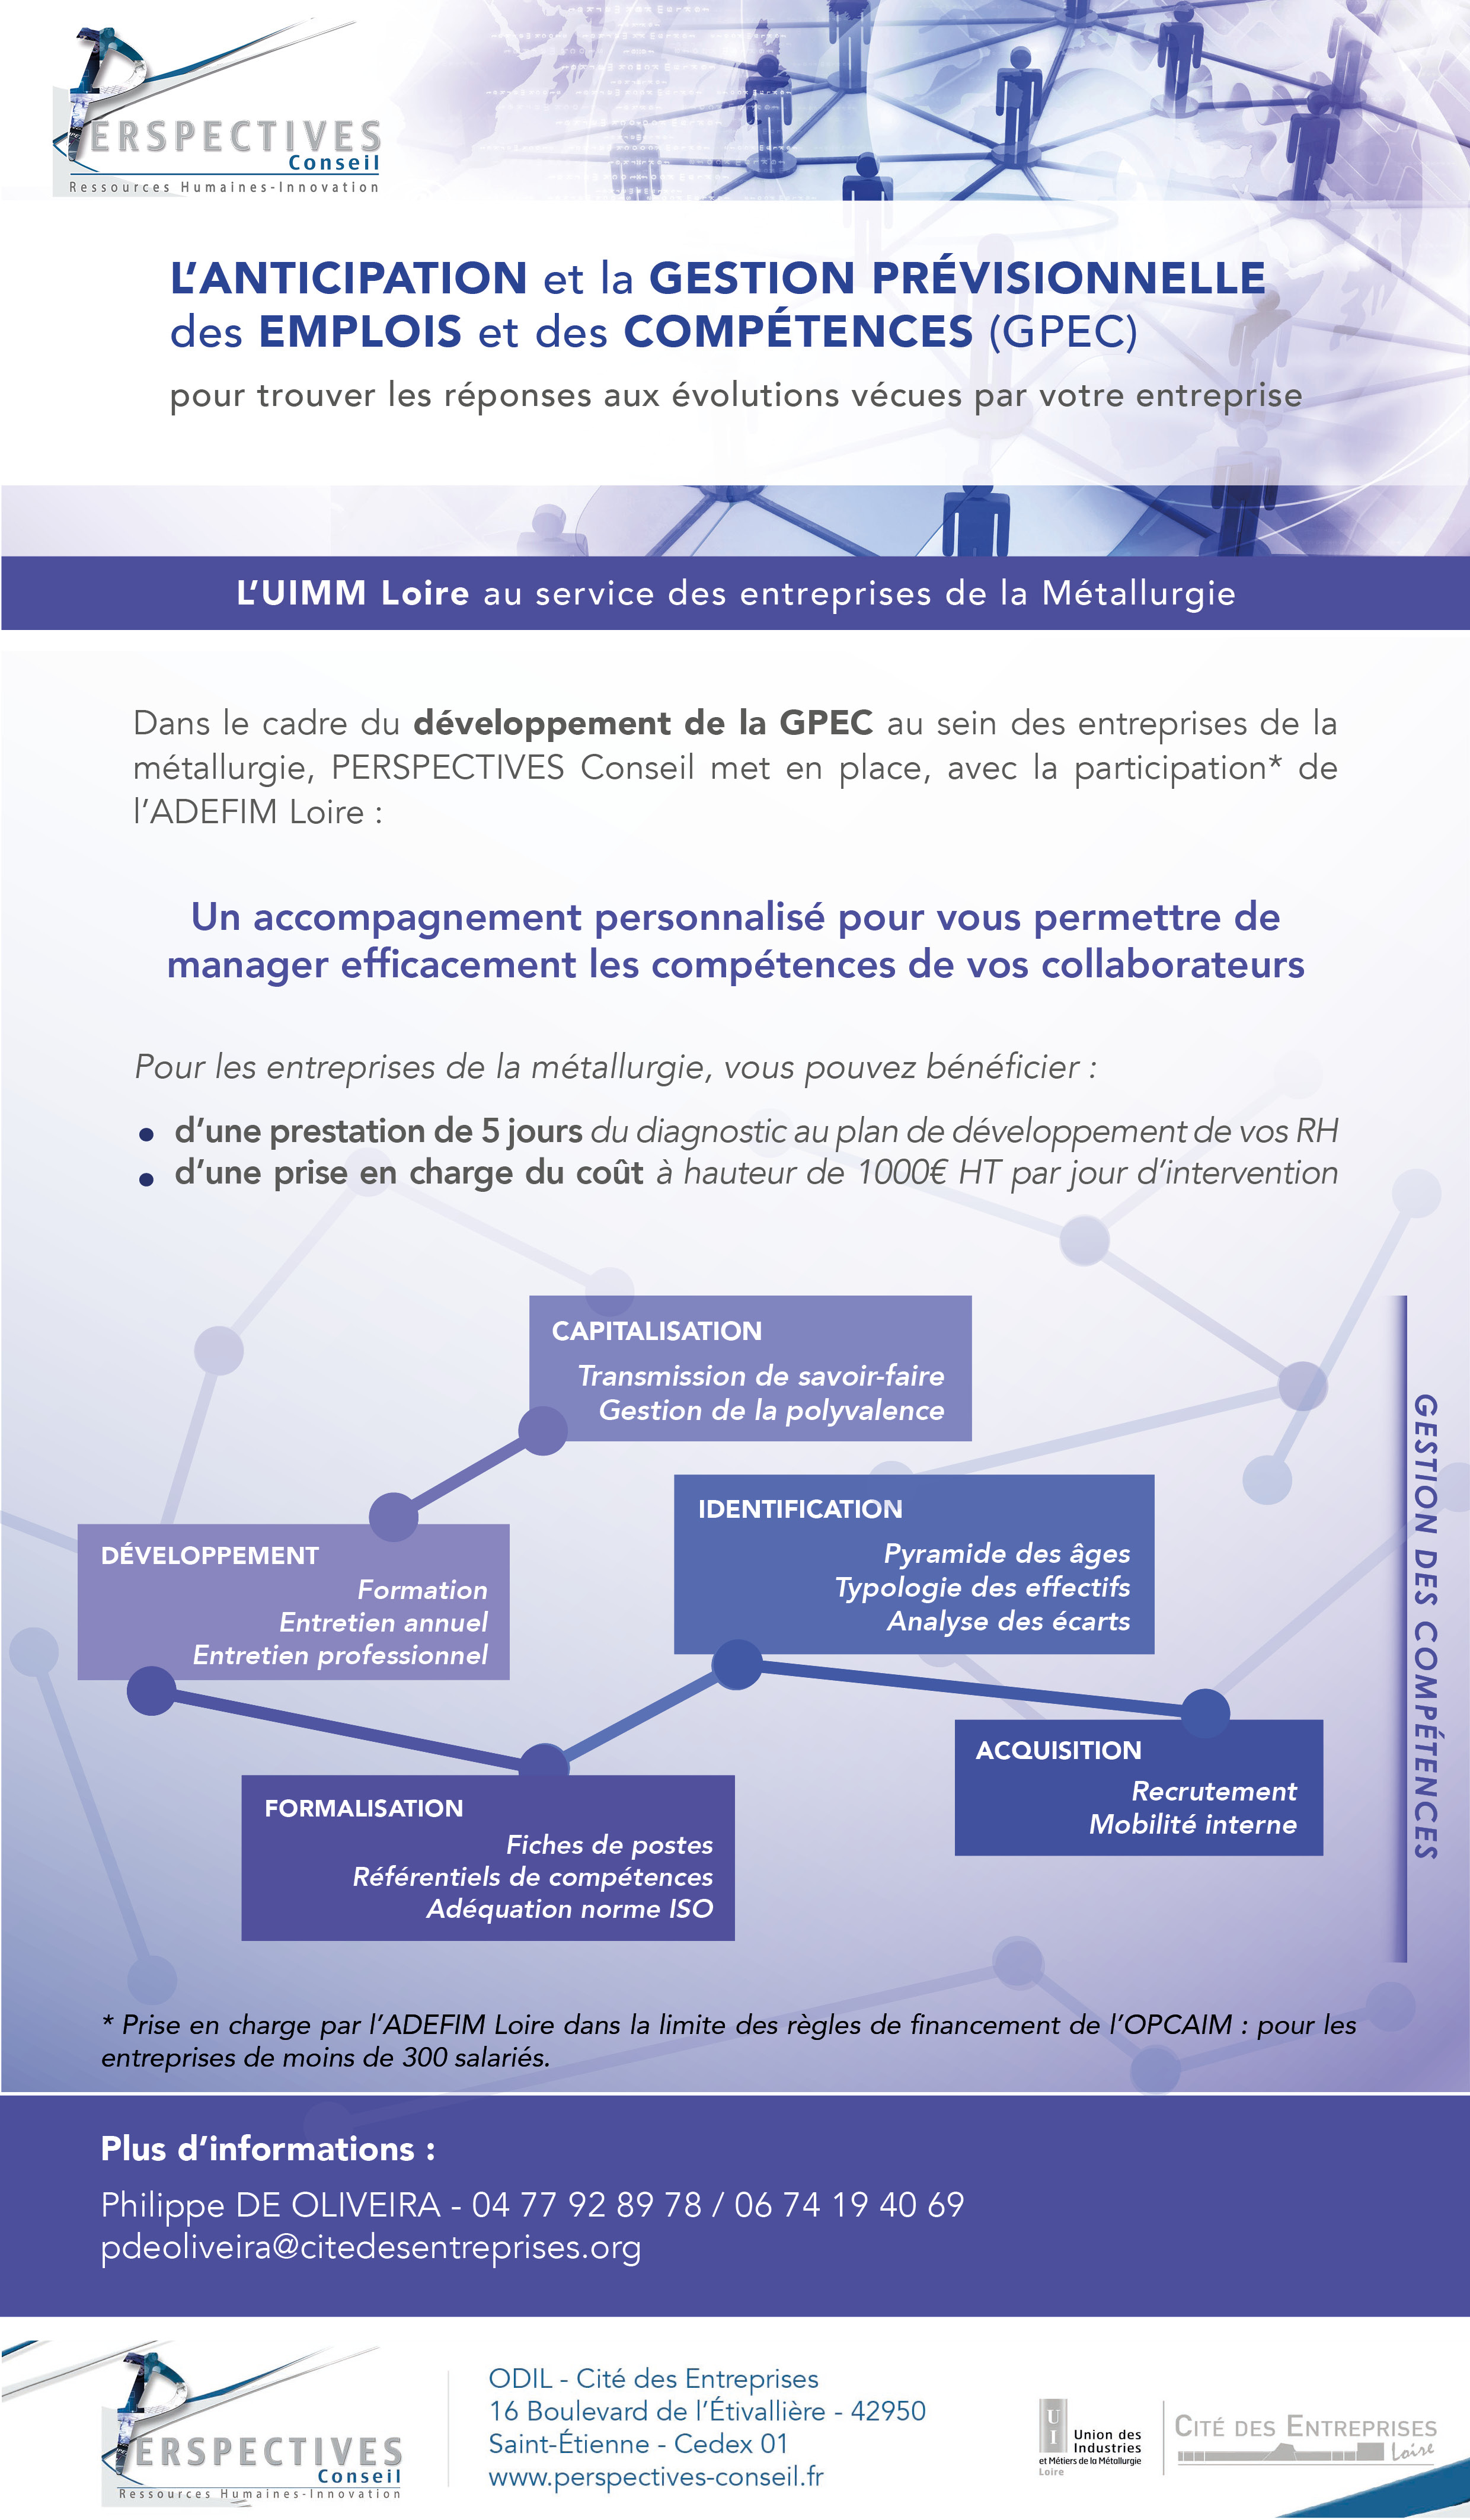 GPEC - PERSPECTIVES Conseil